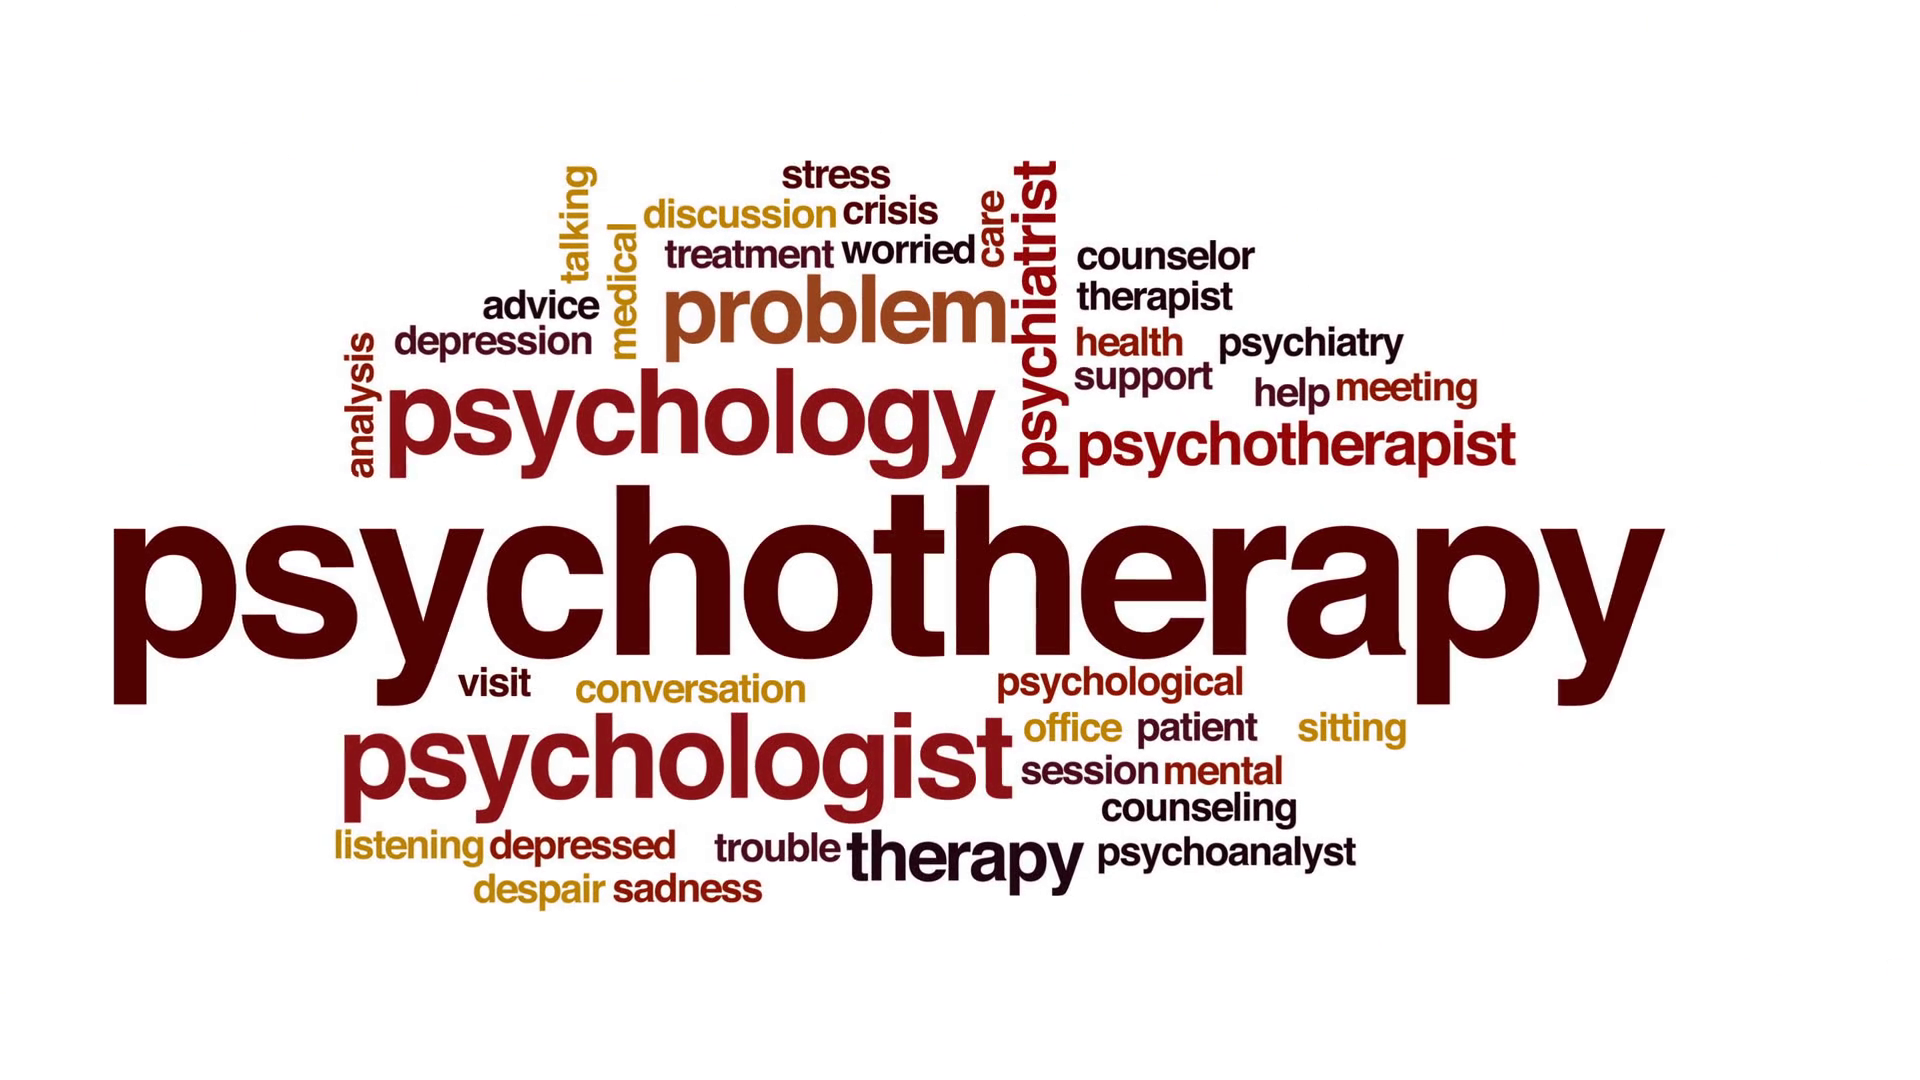 general issues in psychotherapy A practical approach to boundaries in psychotherapy: making decisions, bypassing blunders,  boundary issues on a  in the context of a more general.